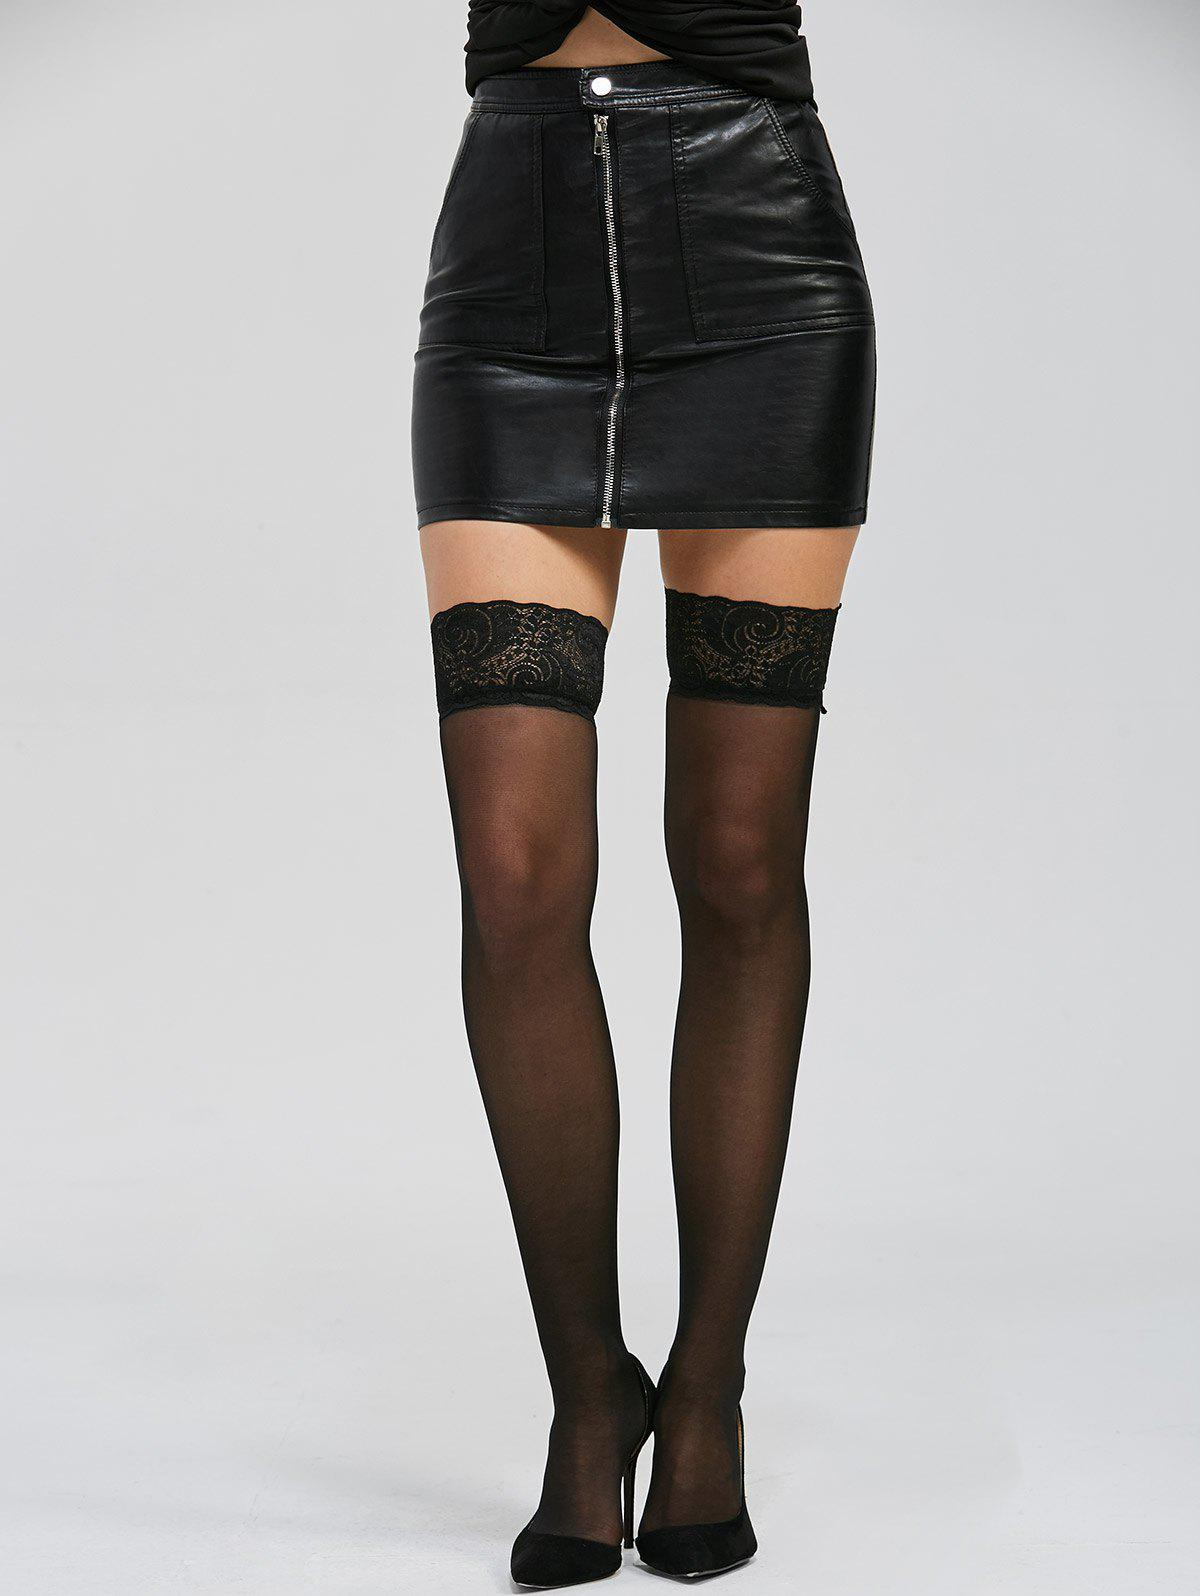 Over Knee Lace Panel See Thru Stockings - BLACK ONE SIZE